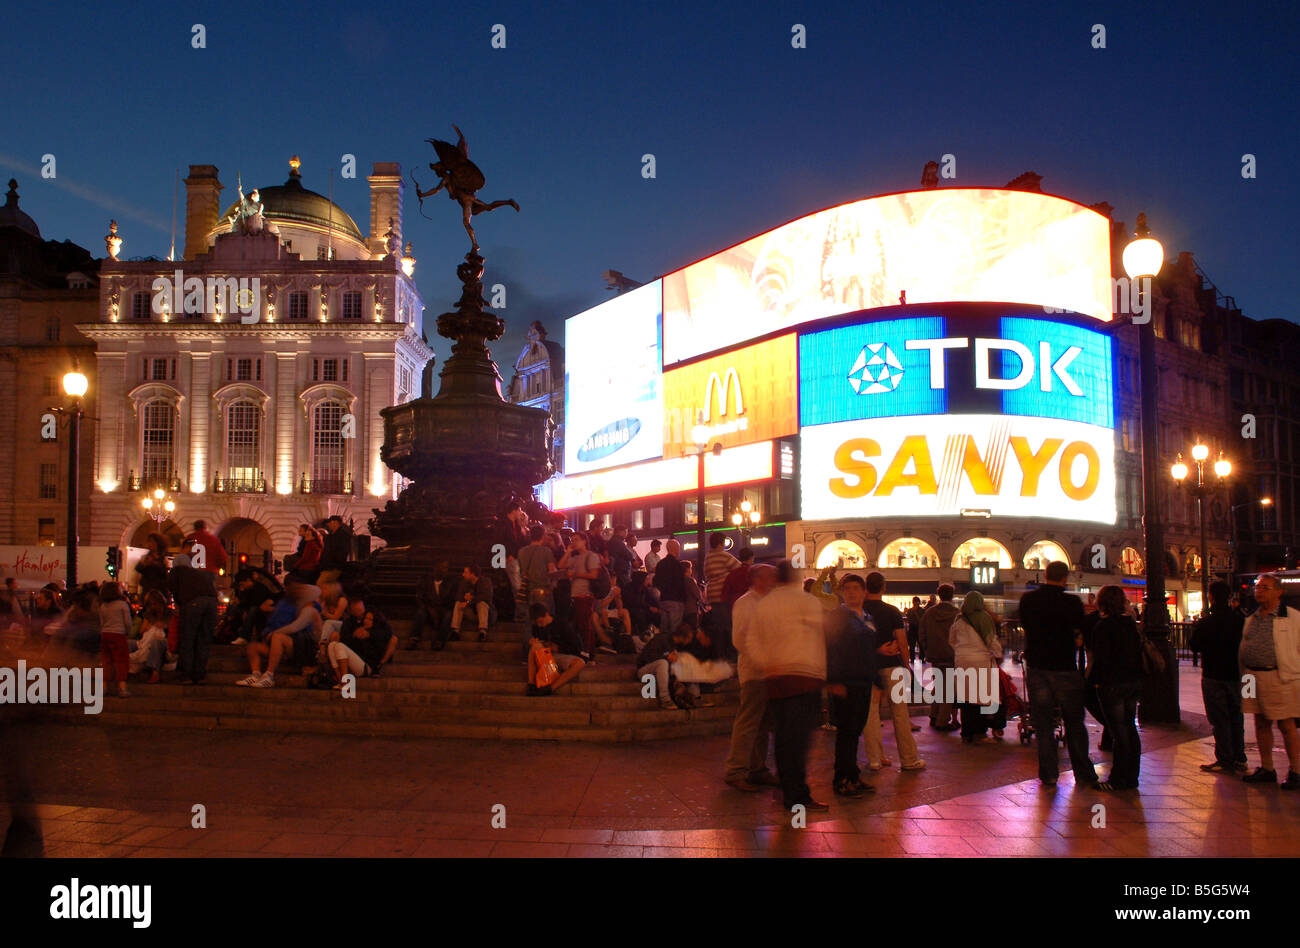 Picadilly Circus West End Regent Street London at night - Stock Image